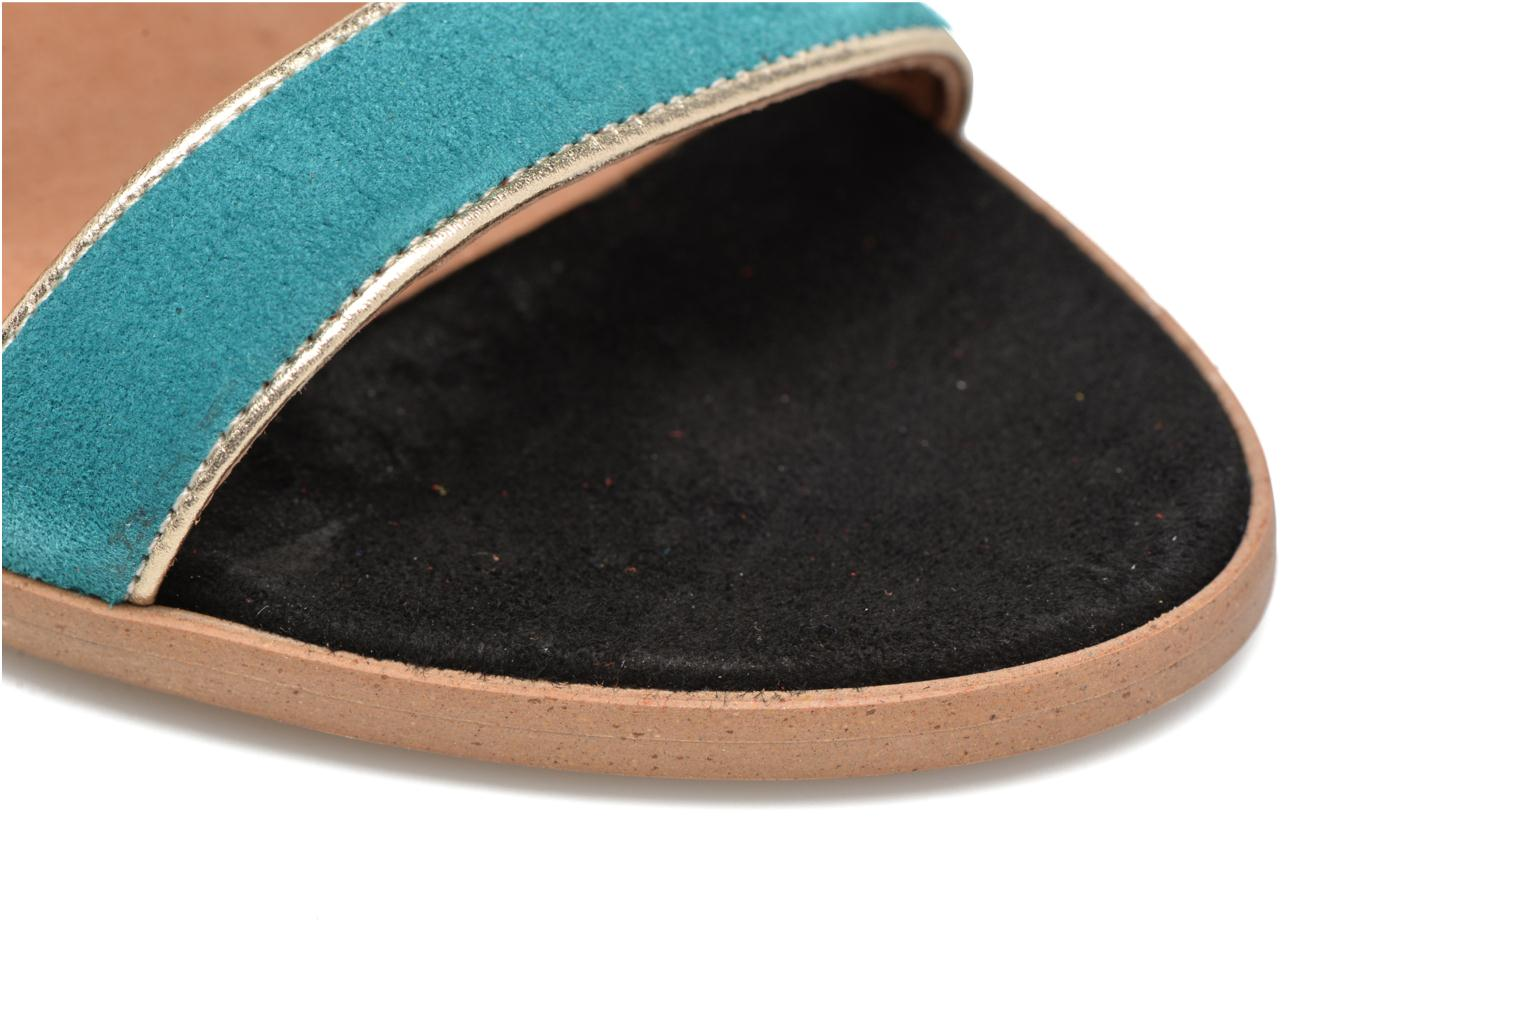 Made by SARENZA Bombay Babes Sandales à Talons #2 Multicolor Klaring Low Cost 0gbwkbNr